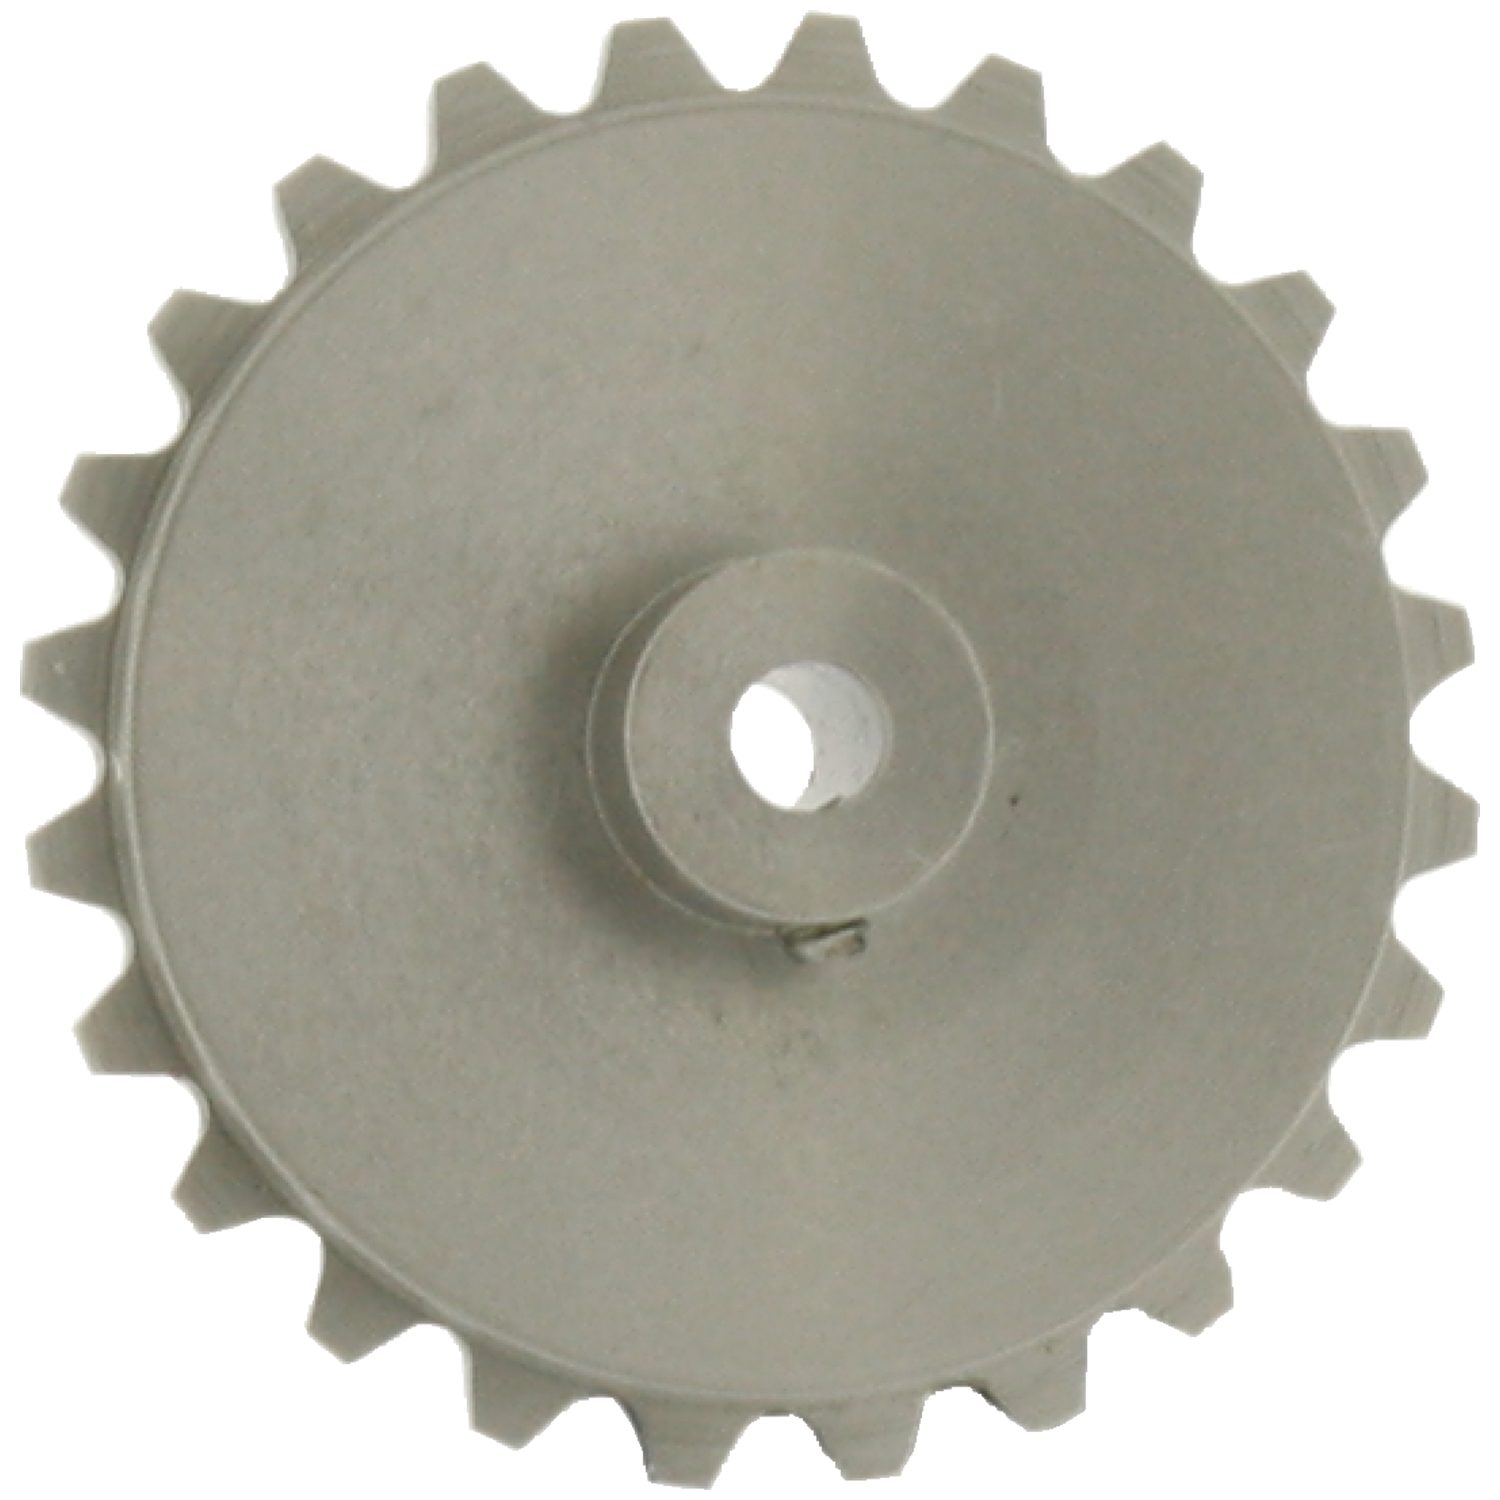 R1056 - Pin Hub Chain Sprockets, pin hub